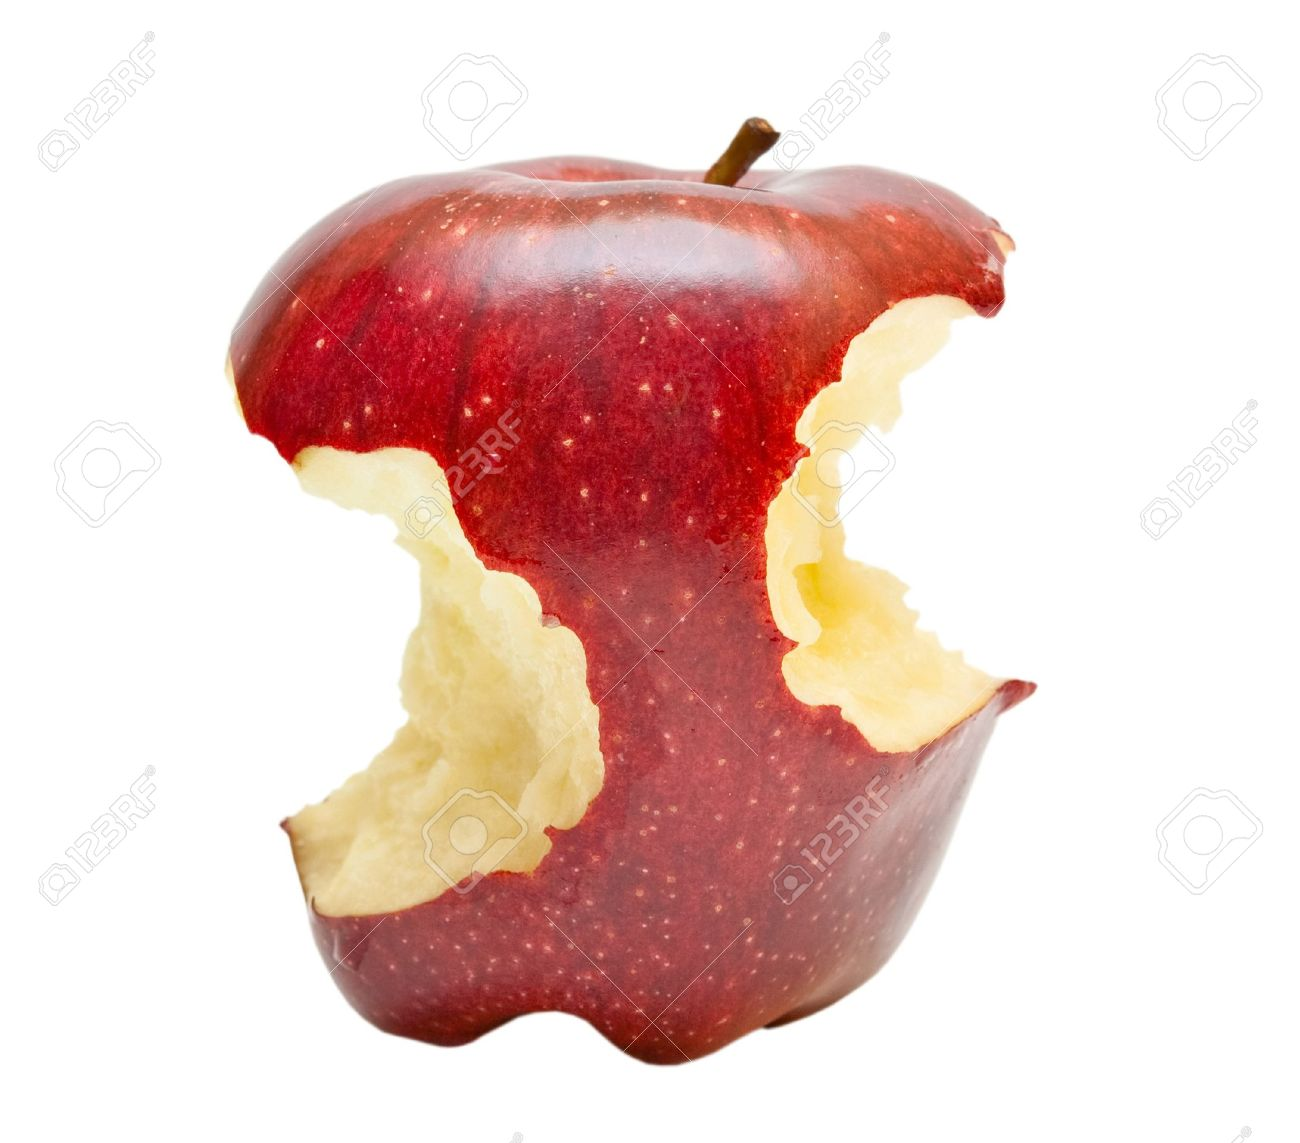 11295176-bitten-red-apple-isolated-on-white-background